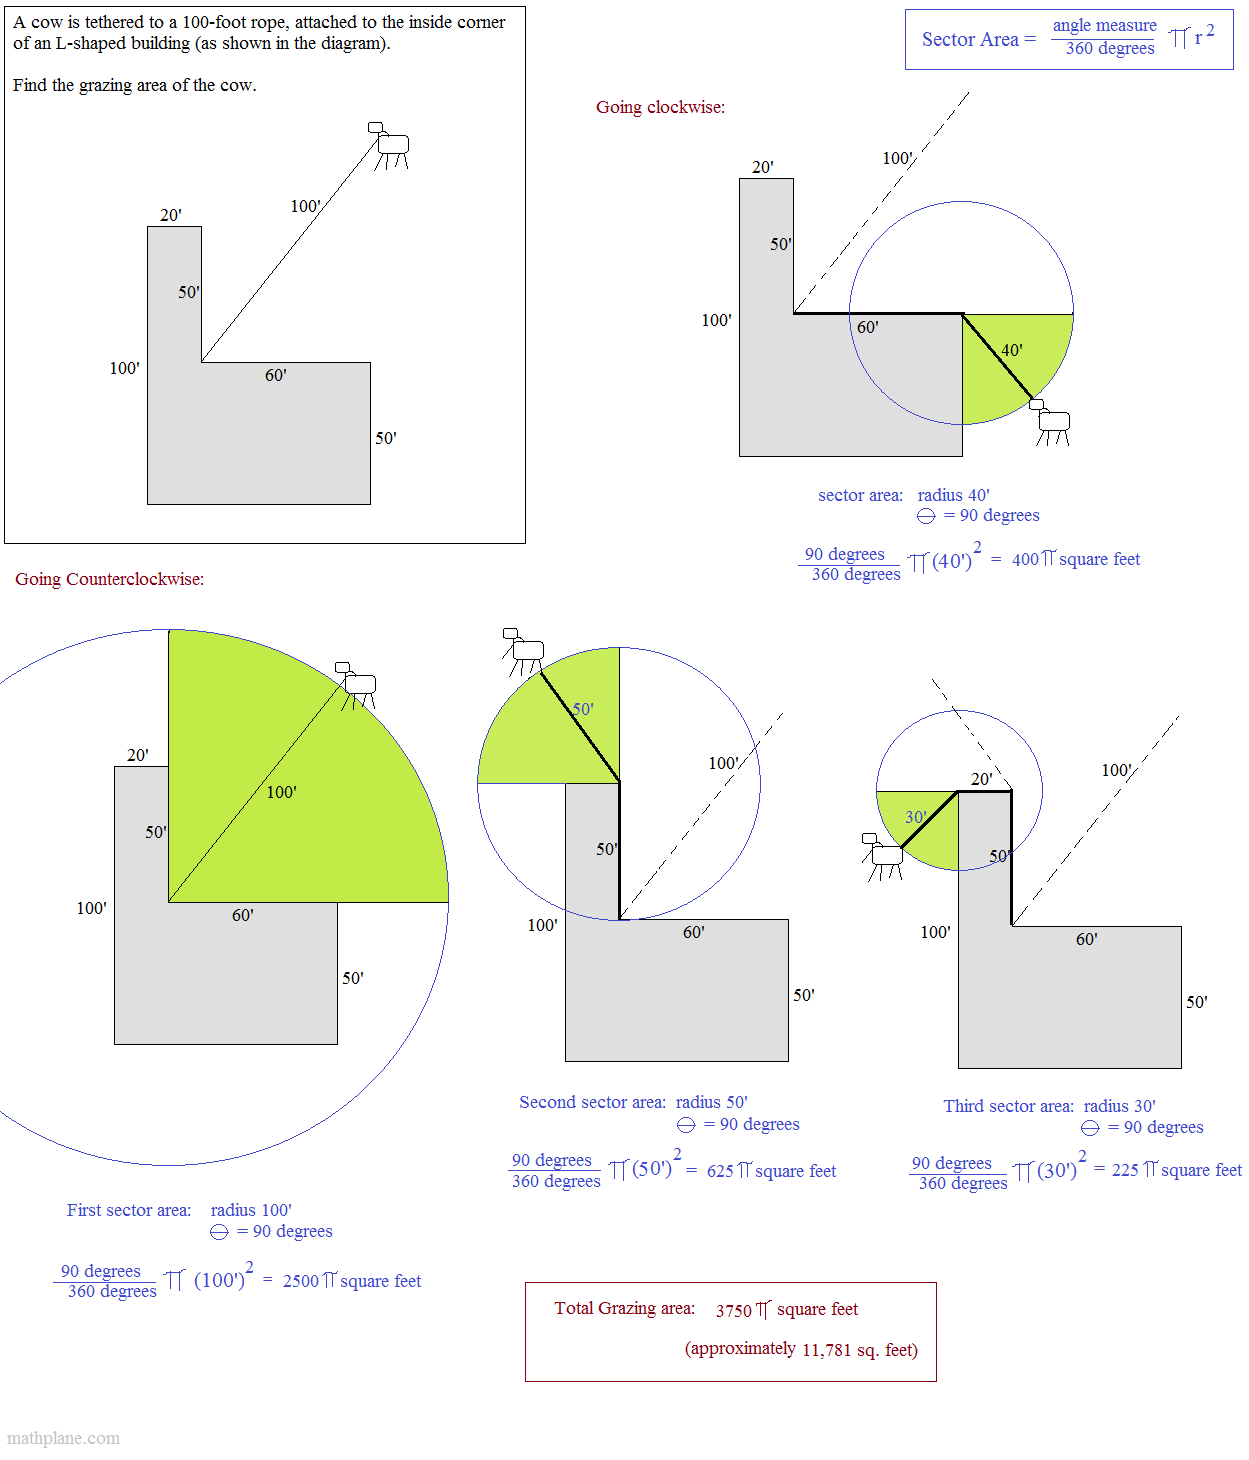 Workbooks worksheets on circumference and area of a circle : Math Plane - Arc Length & Sector Area